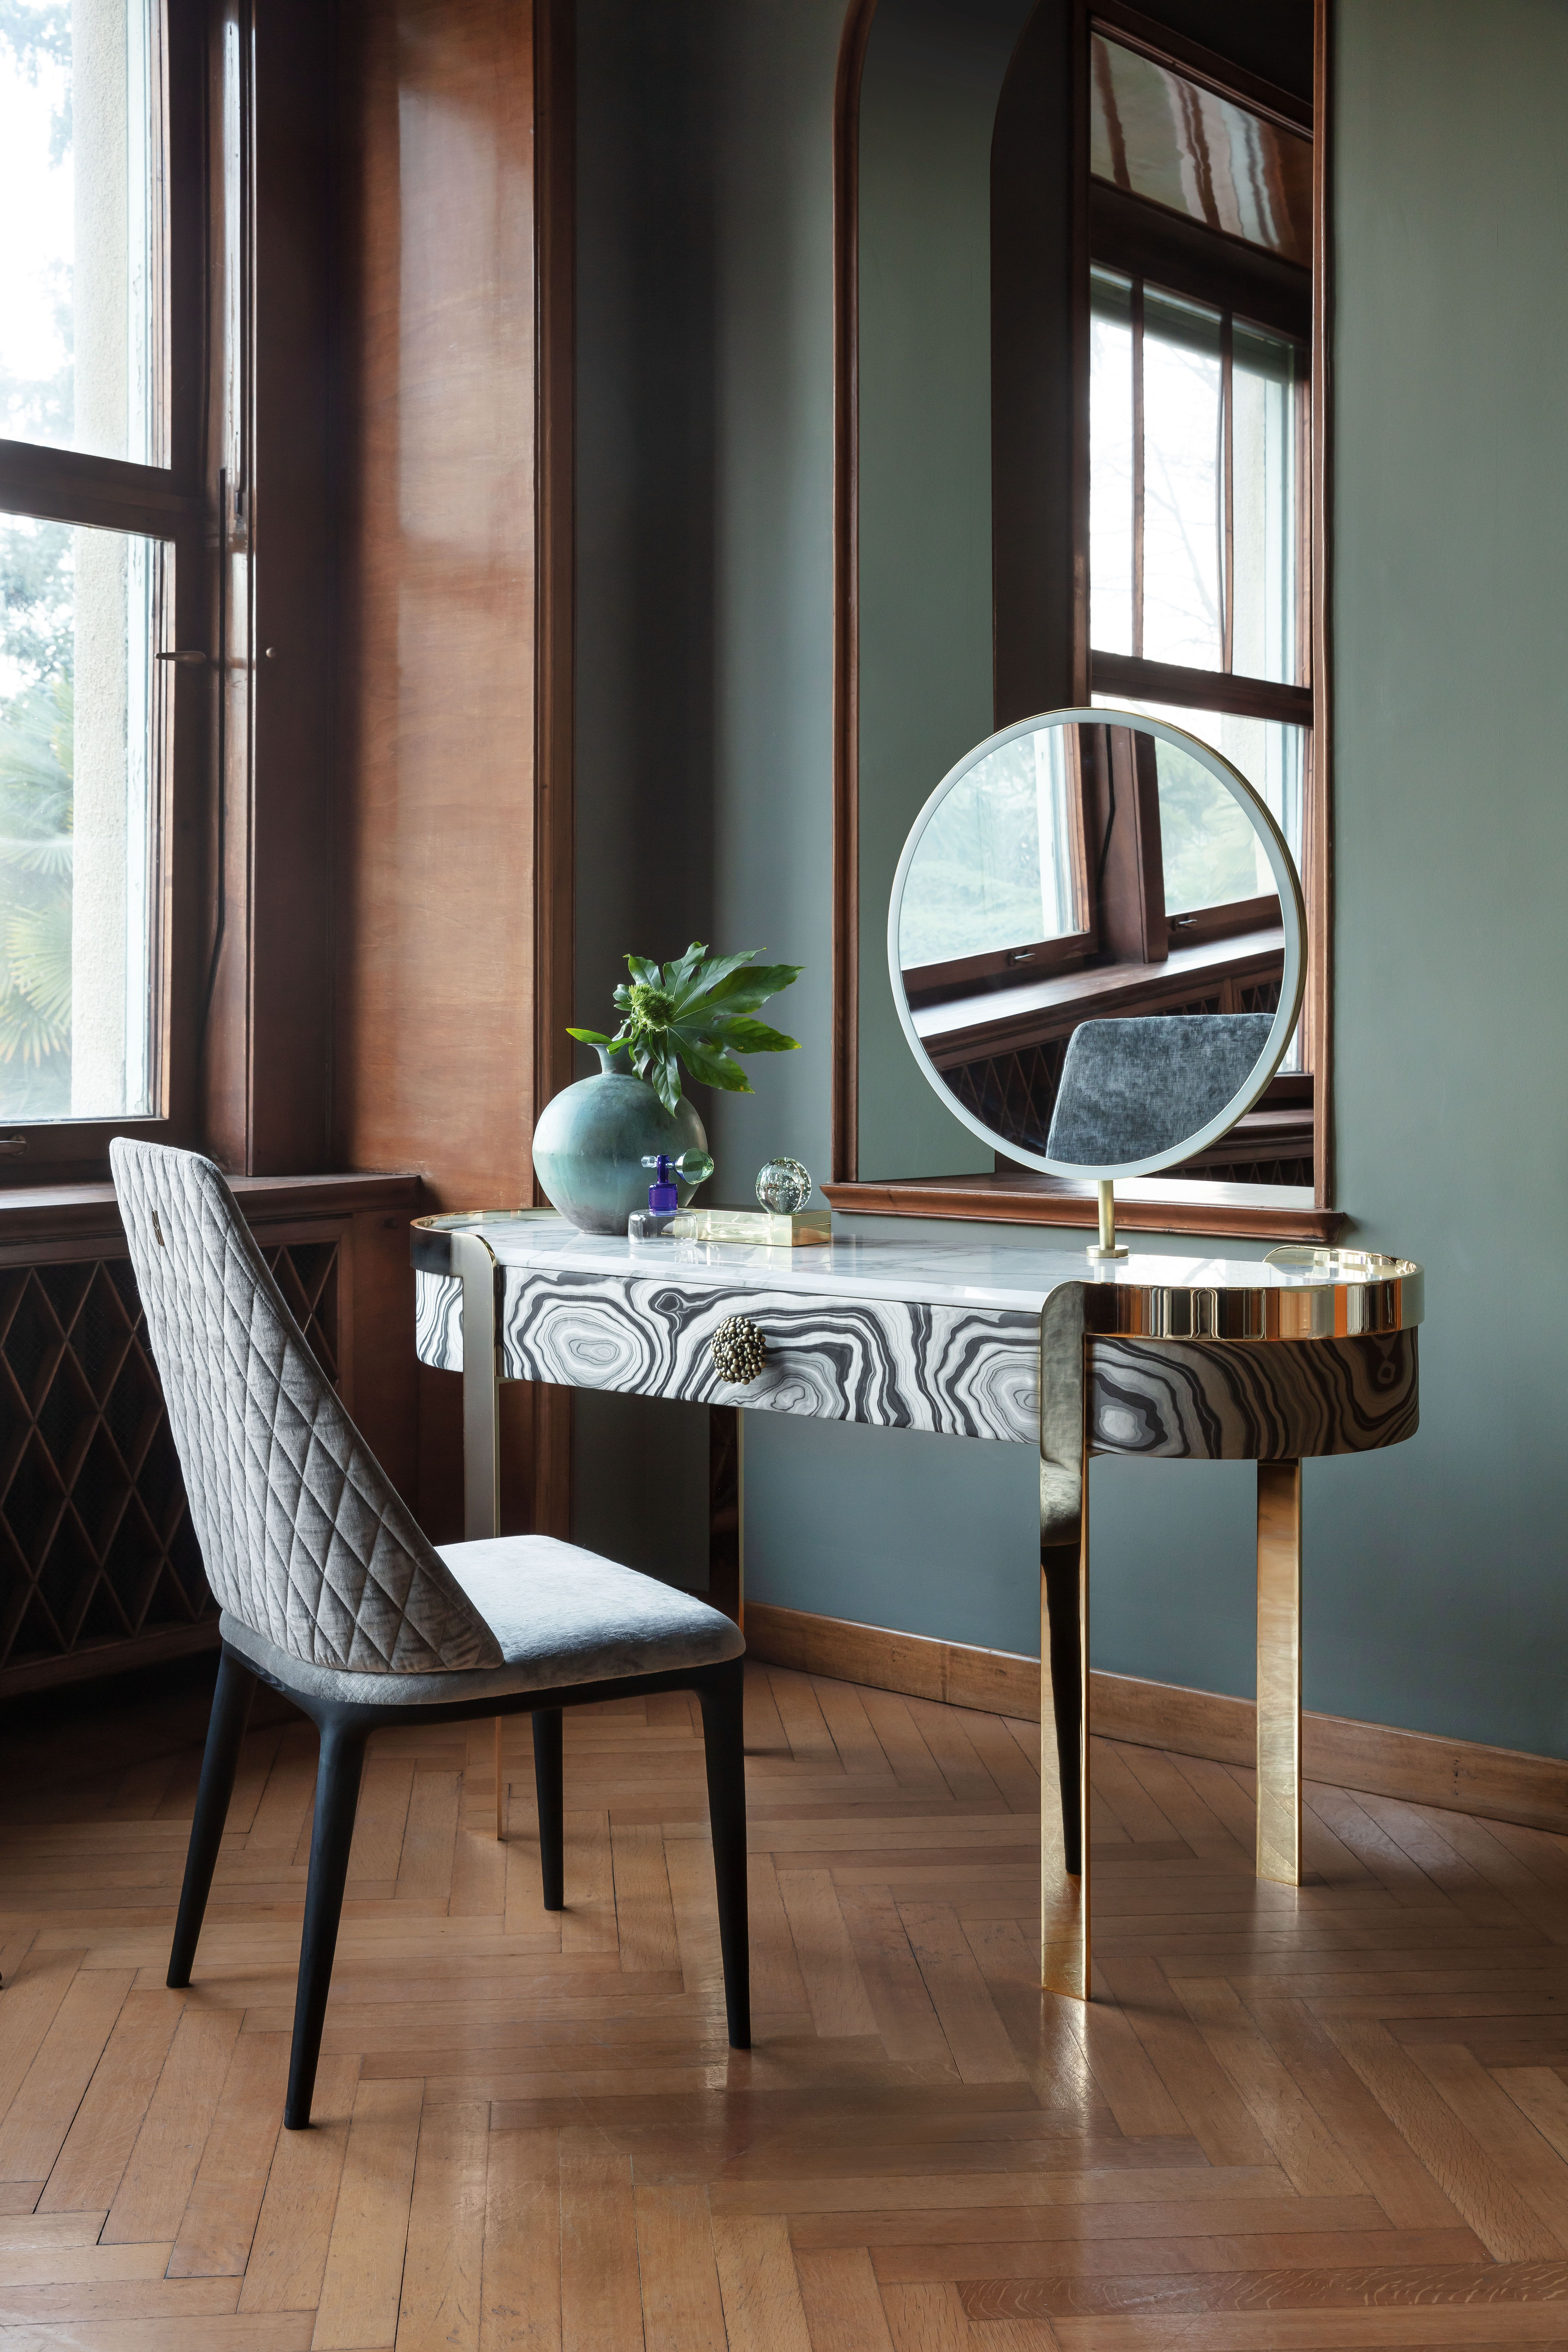 The Doris is a single door dressing table covered in